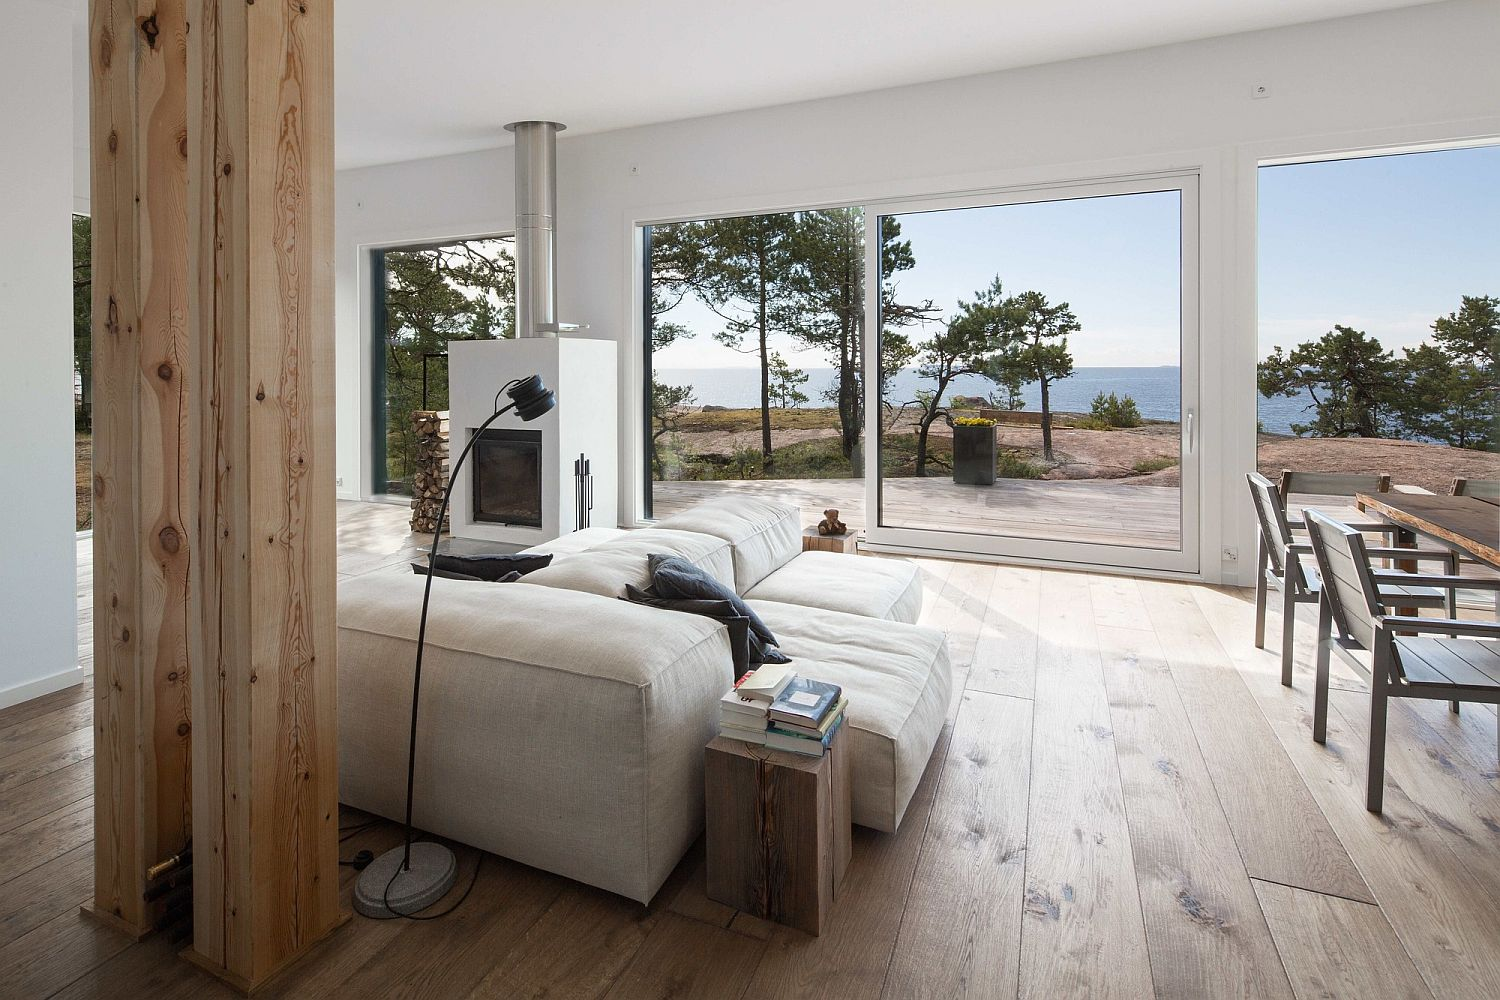 Pluspuu Logs and terrace made of Siberian larch at the beautiful island escape